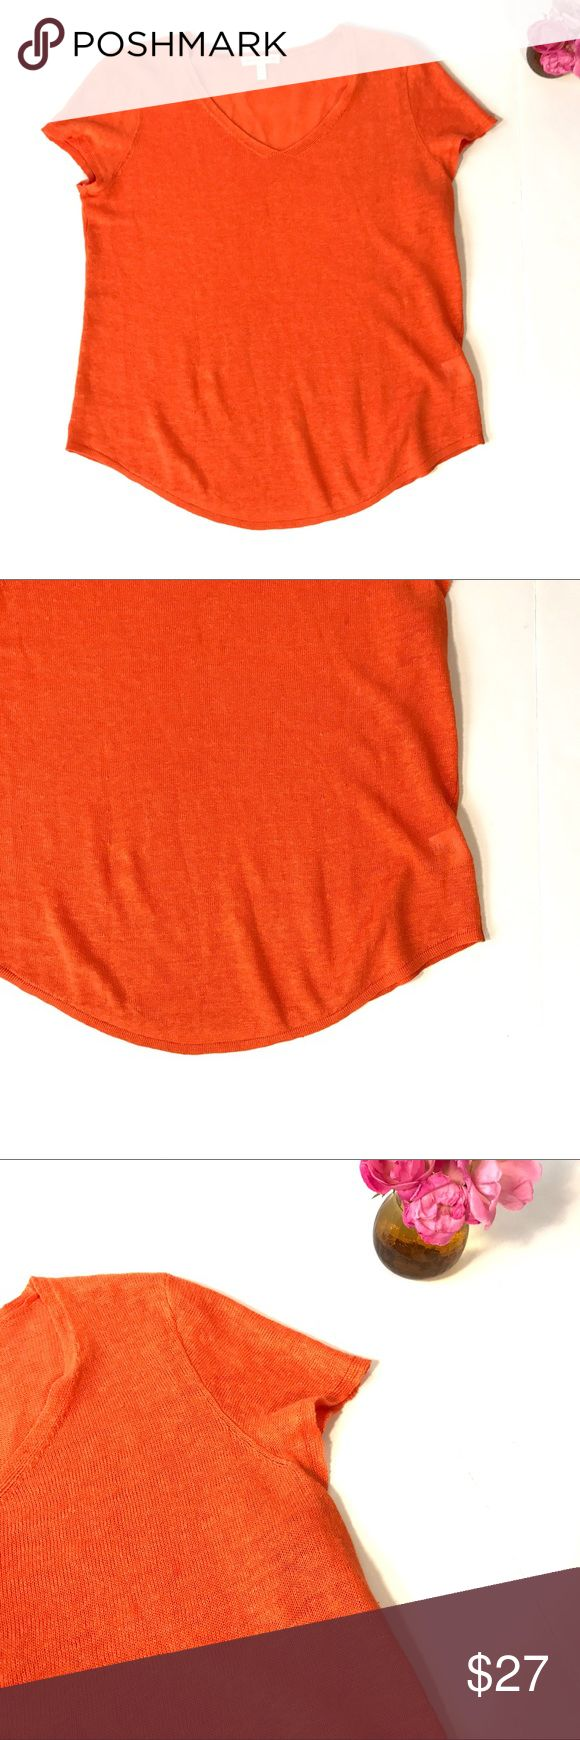 Eileen Fisher organic 100% Linen orange t shirt xs Eileen Fisher 100% organic linen lightweight knit short sleeved t-shirt in orange. Women's size extra small.  This shirt is in gently used condition with light wear, no holes, and no stains. Please take a look through the photos to see if this item is right for you! Eileen Fisher Tops Tees - Short Sleeve